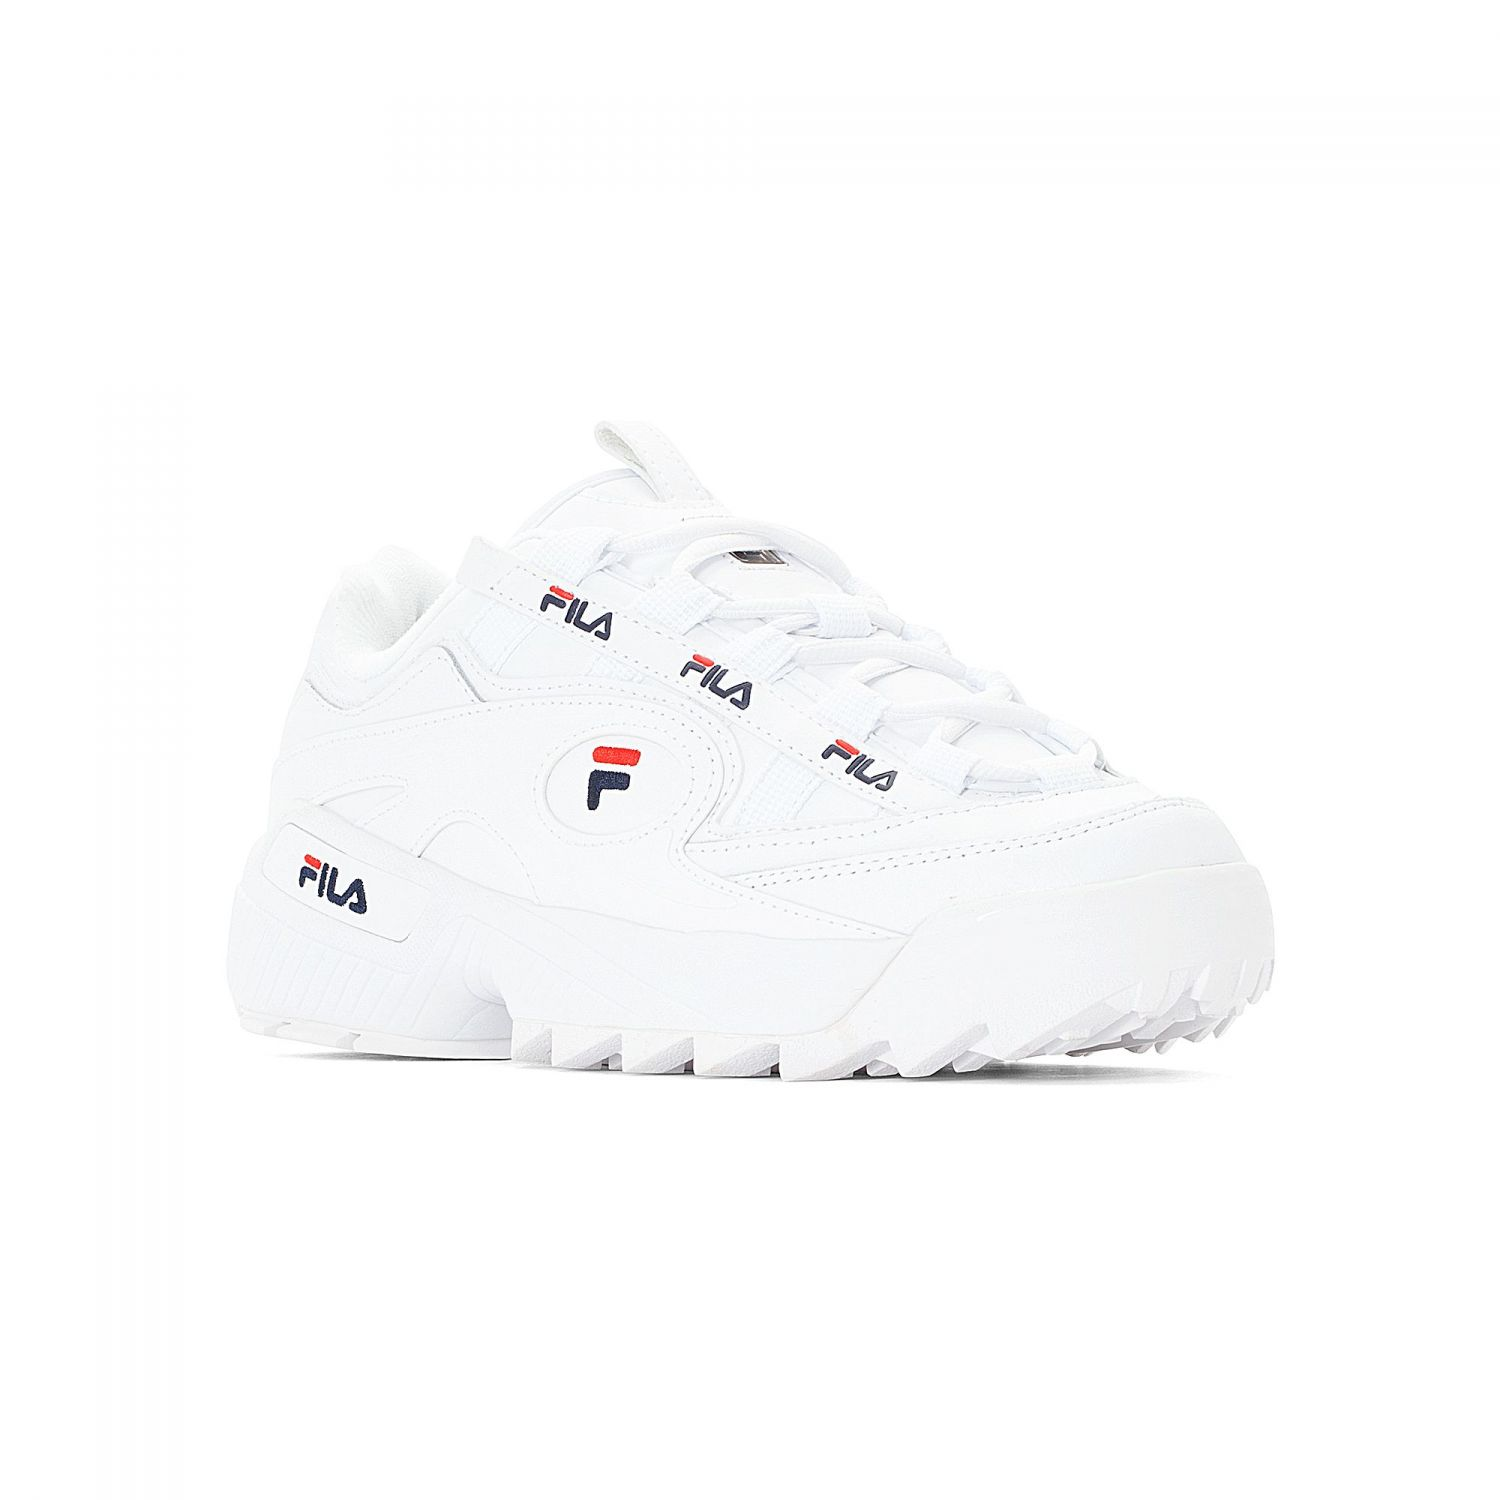 a06a29e468b Fila - D Formation Men white - 00014201683969 - white